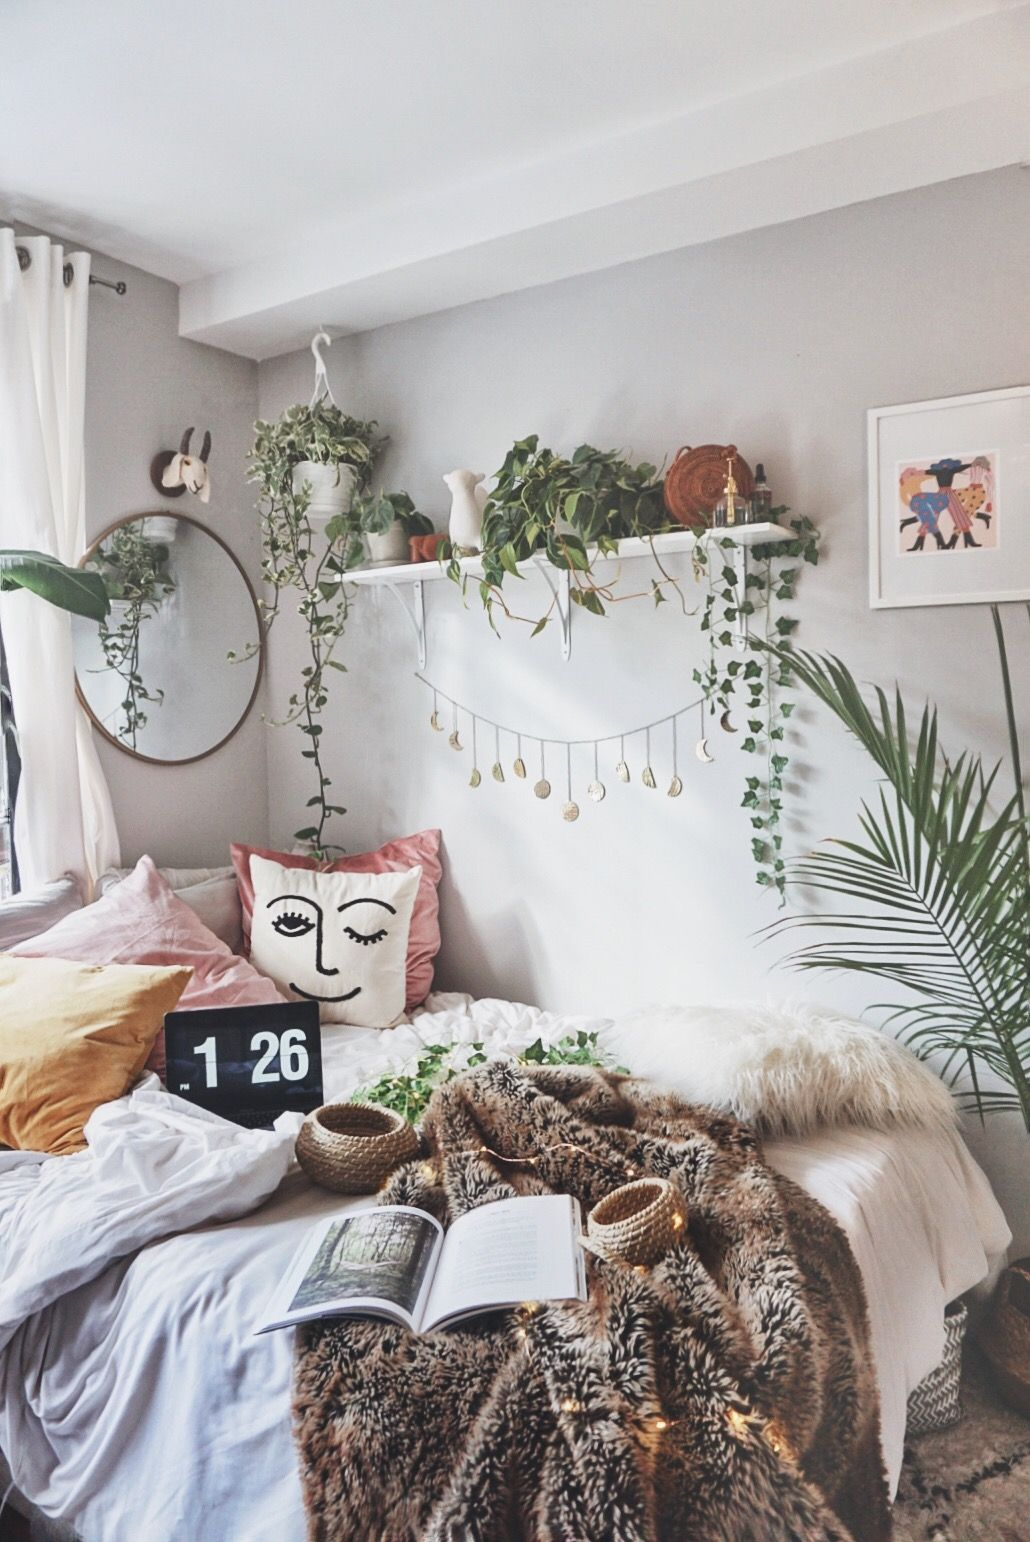 Winky Pillow From Urban Outfitters Home Bohemian Bedroom Decor